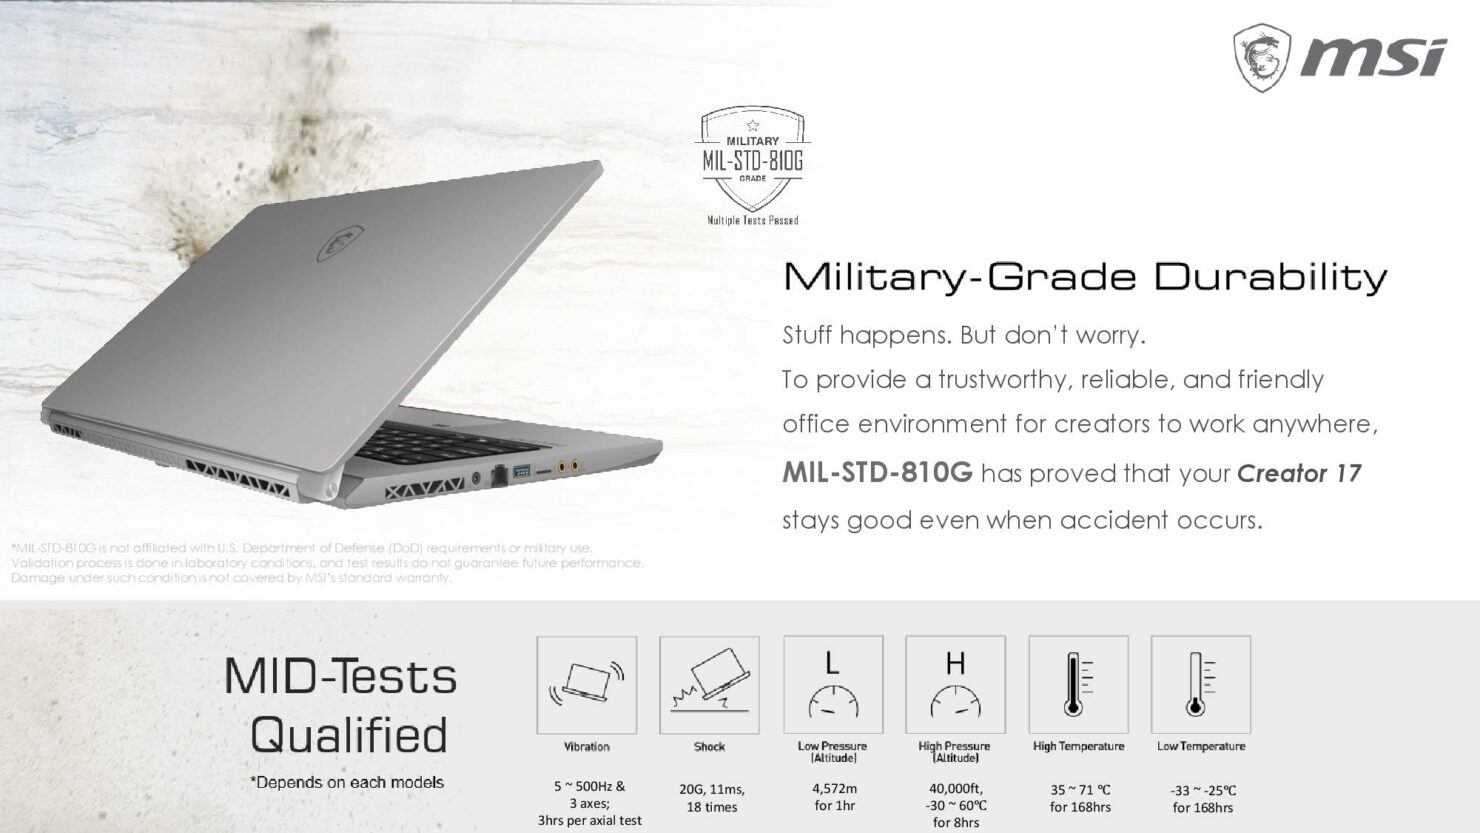 msi-creator-17-product-information-page-031